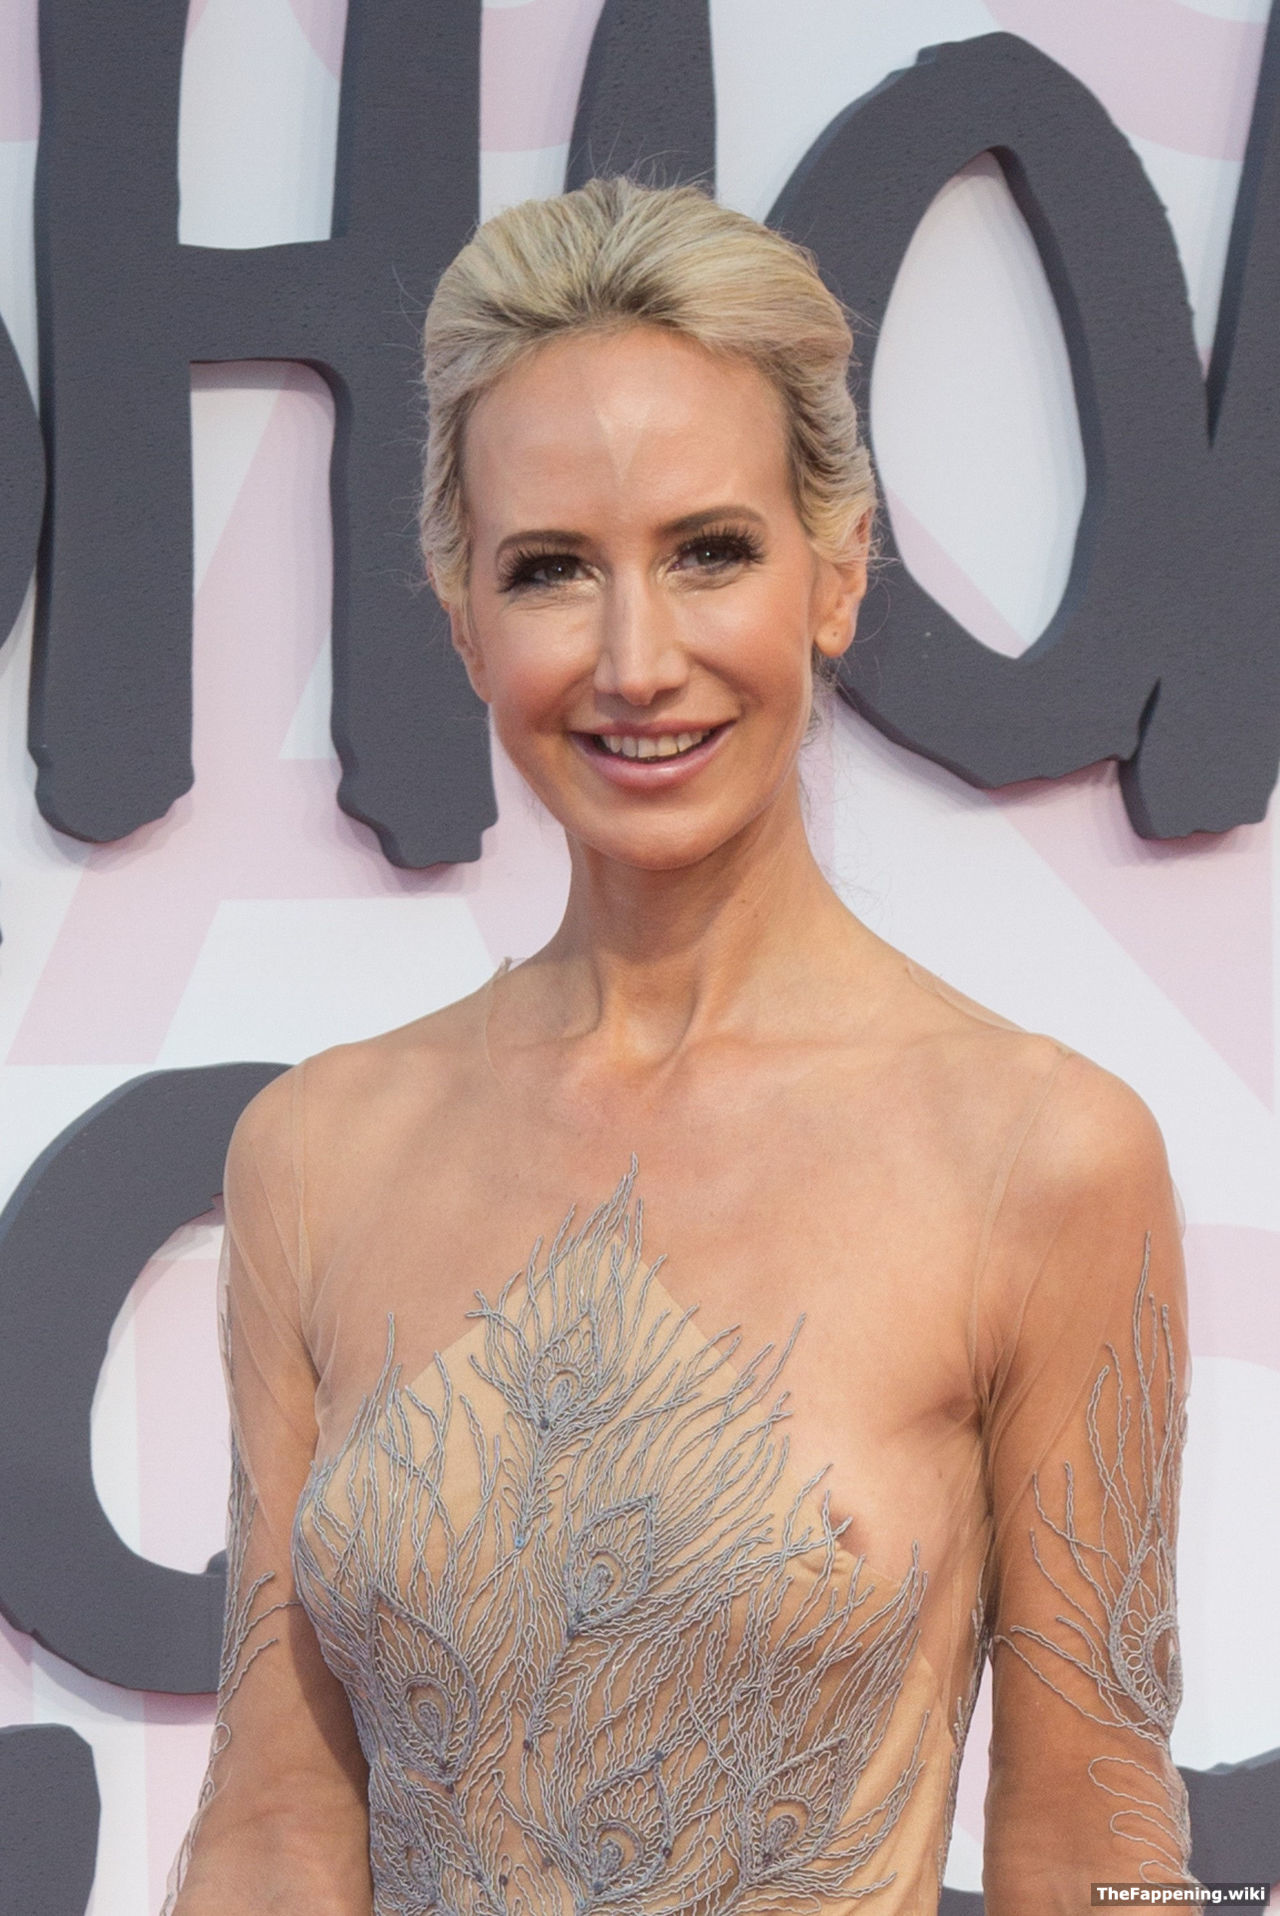 Andie Macdowell Nackt lady victoria hervey nude pics & vids - the fappening